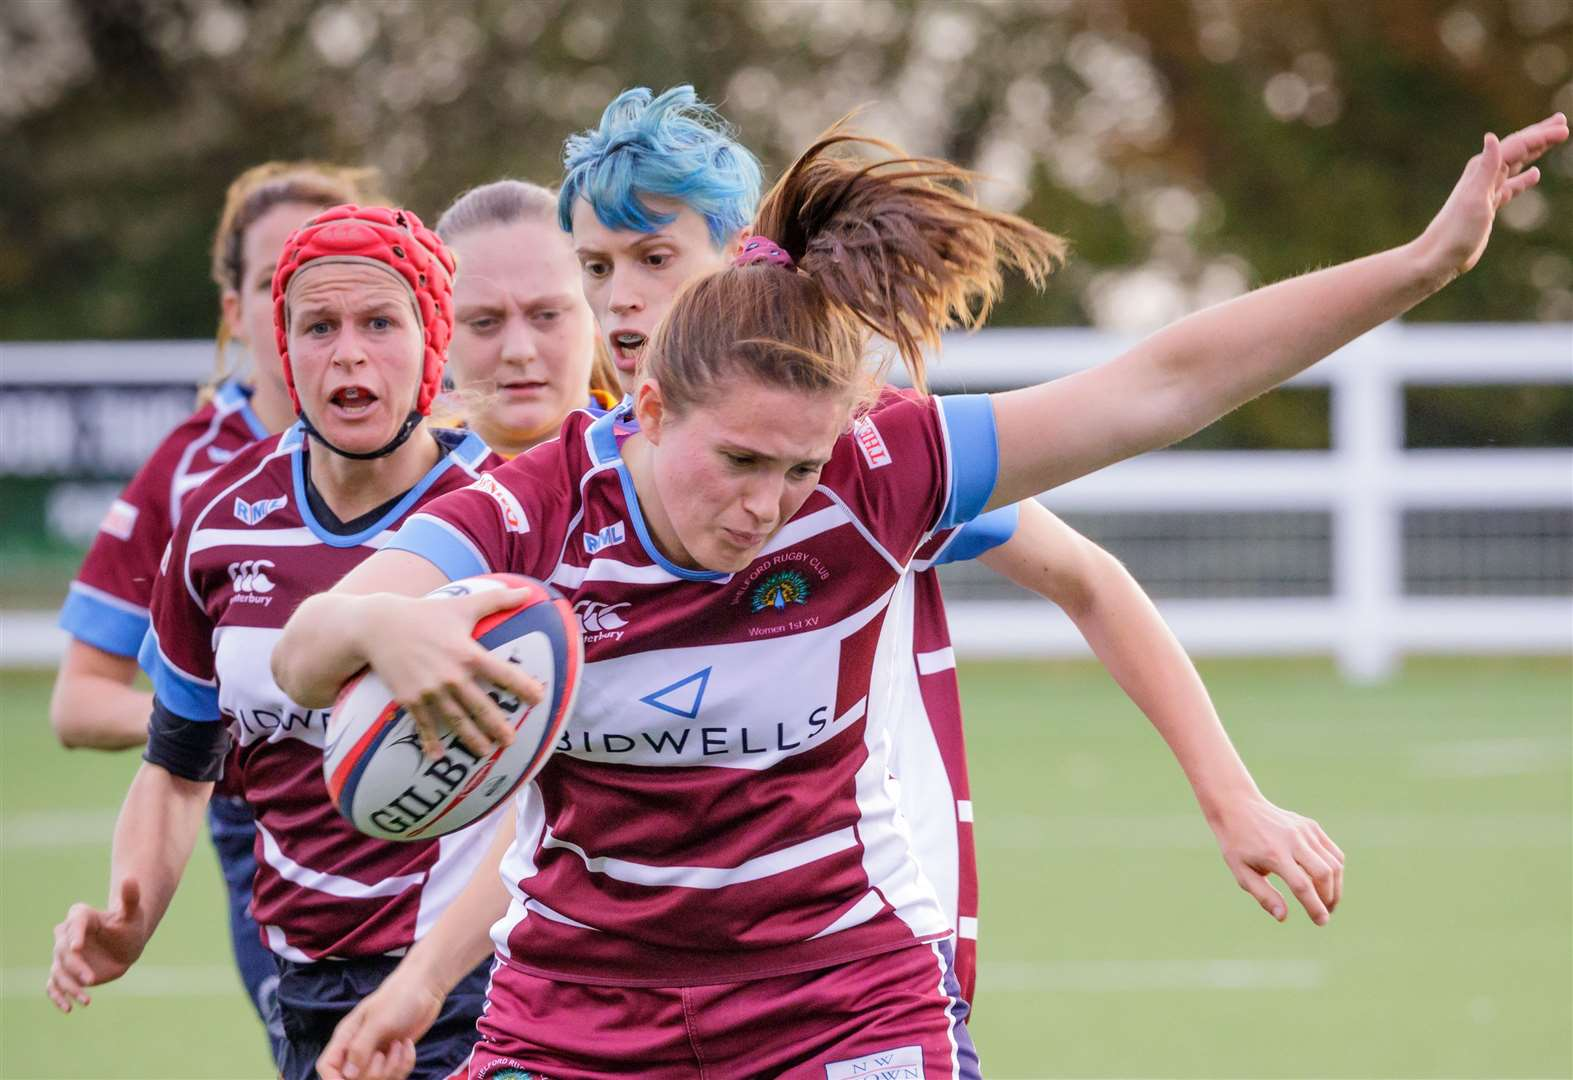 Shelford Women's duo named in Great Britain squad for the International Police Rugby Championship